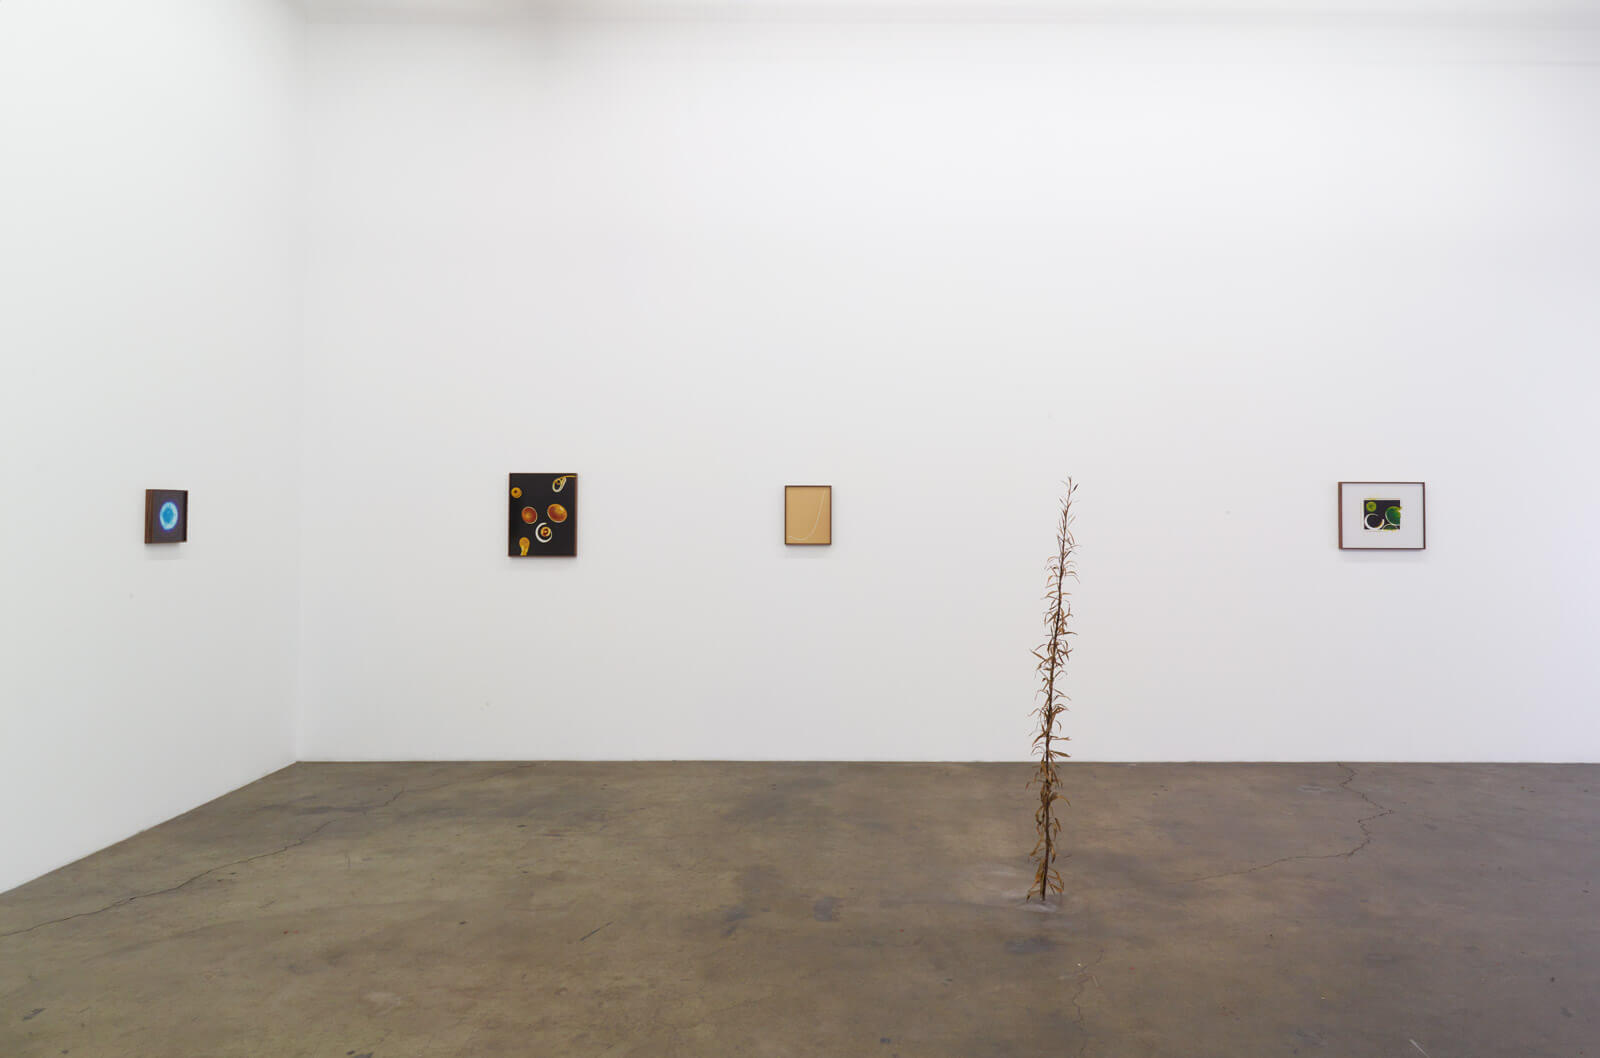 4_kelly-akashi-being-as-a-thing-installation-view